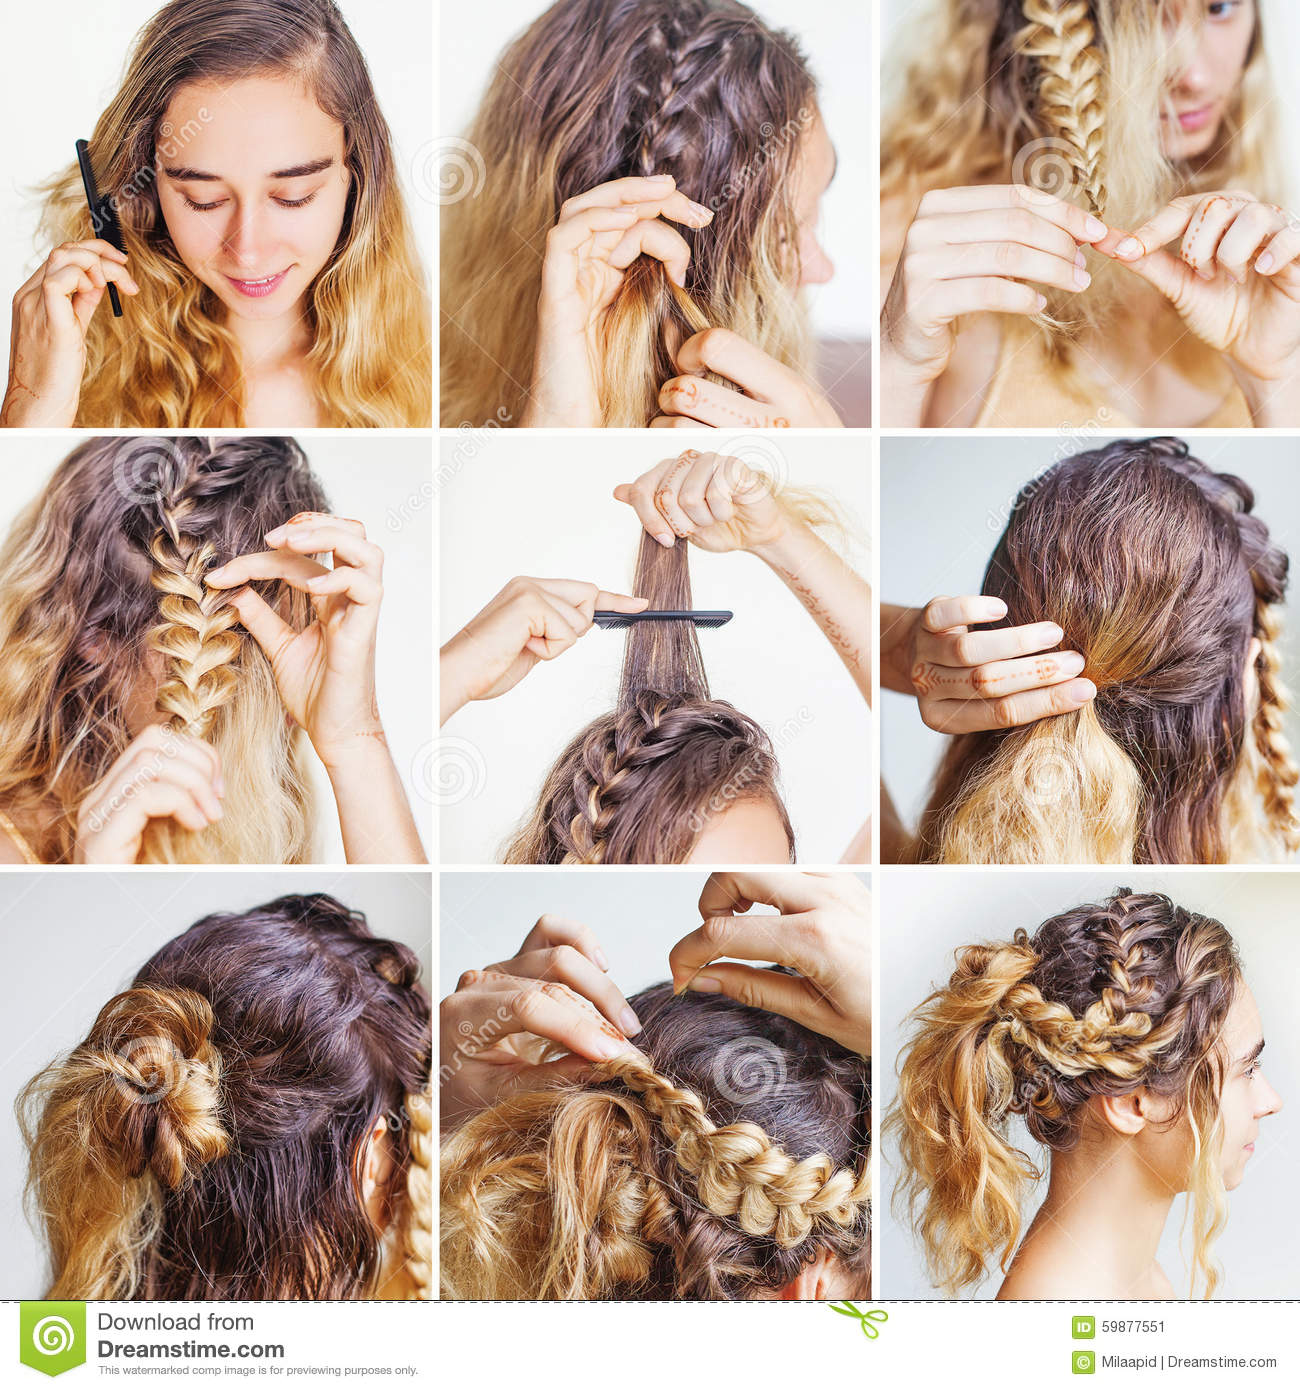 Incredible Braided Updo Tutorial For A Curly Hair Stock Photo Image 59877551 Hairstyles For Women Draintrainus